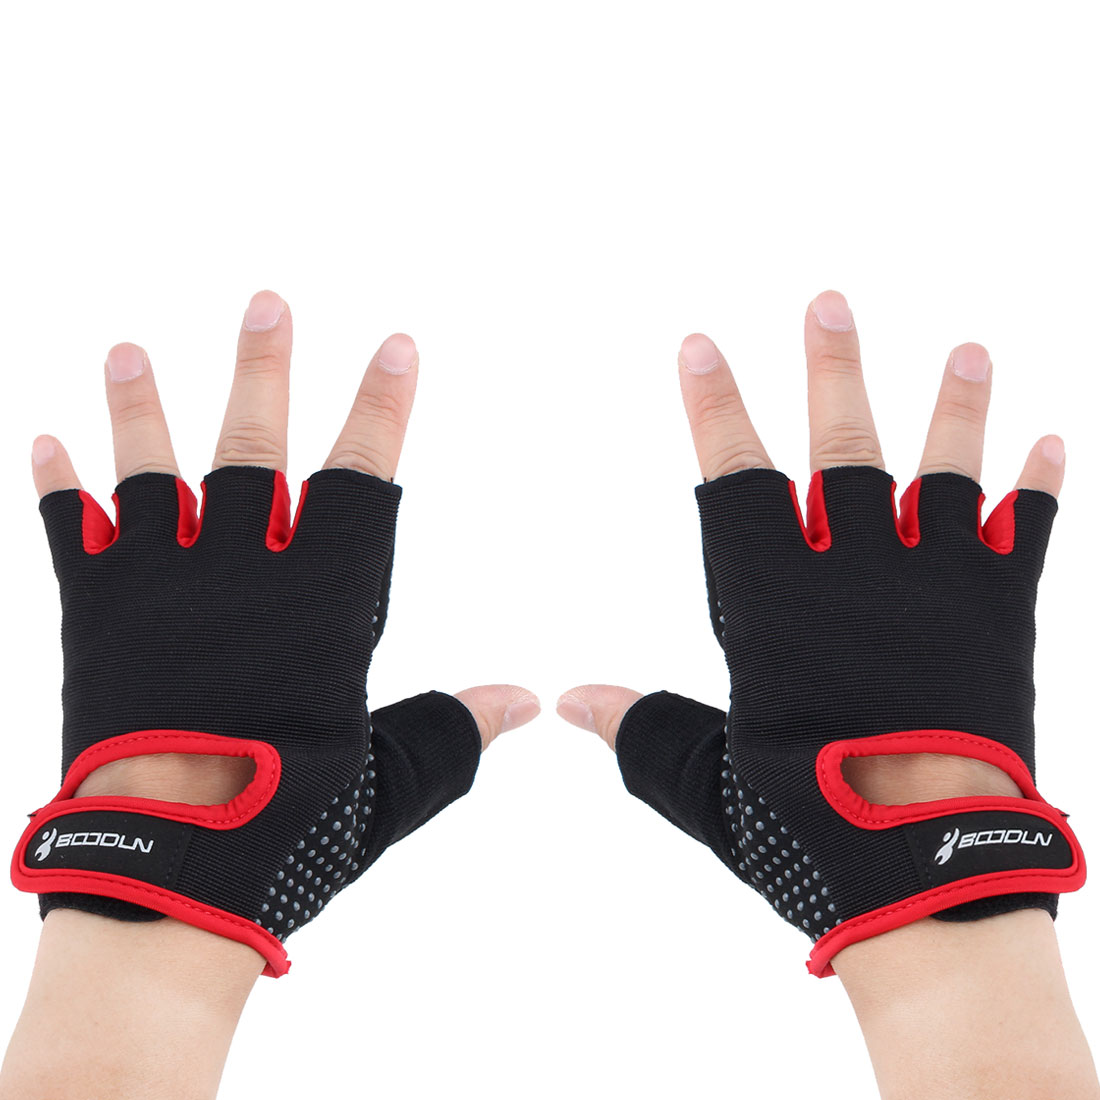 BOODUN Authorized Gym Workout Weight Lifting Training Adjustable Anti Slip Breathable Fitness Half Finger Gloves Red M Size Pair